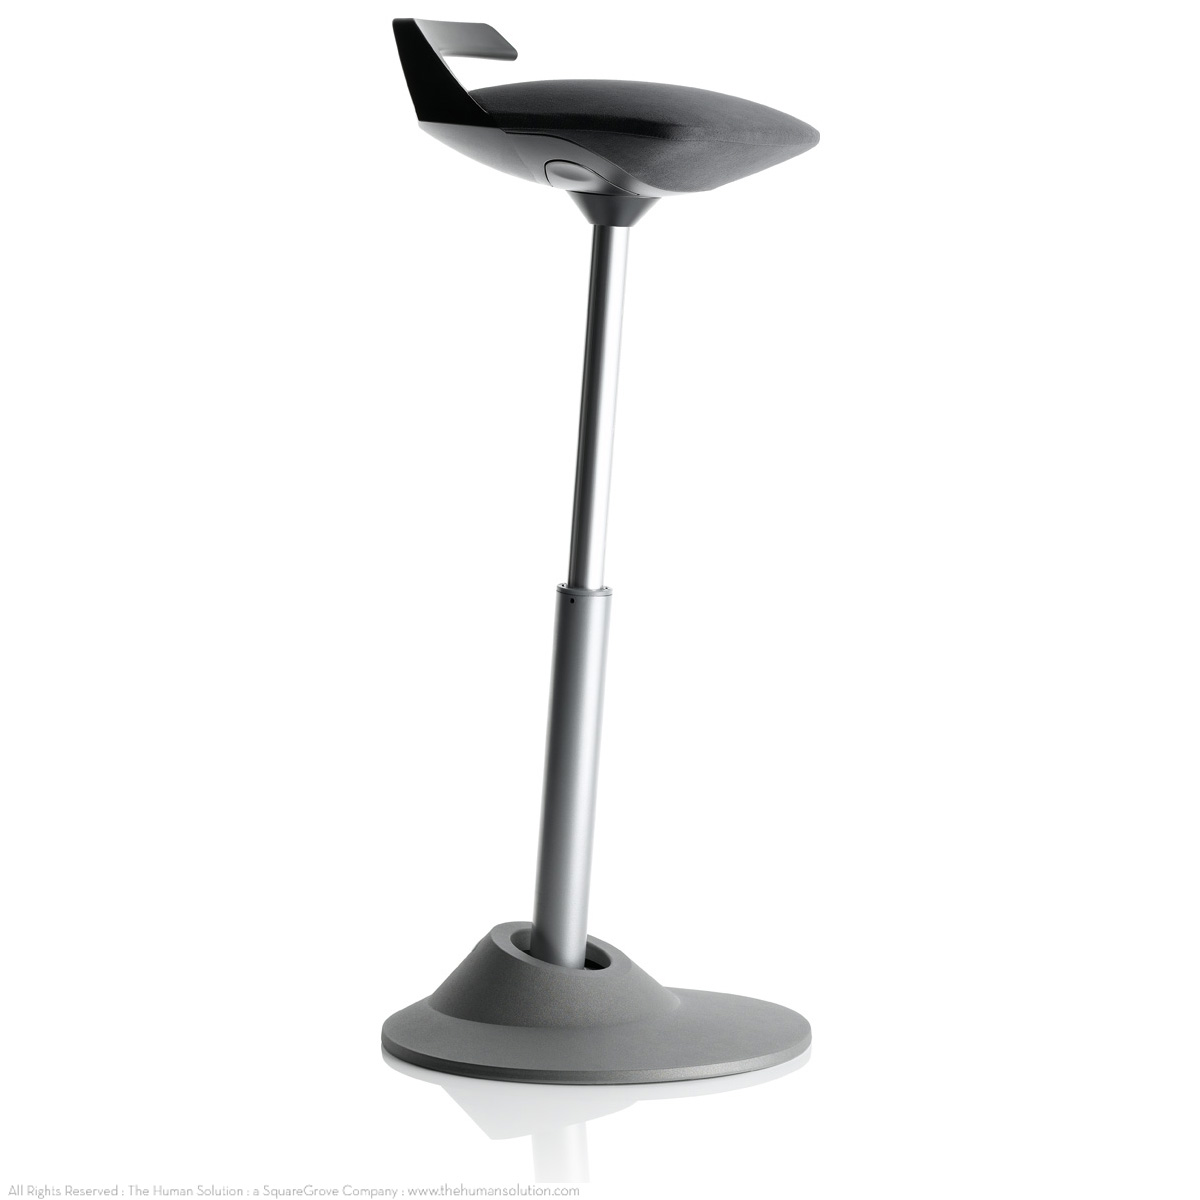 office chair light stand rifton accessories muvman sit stool shop stools